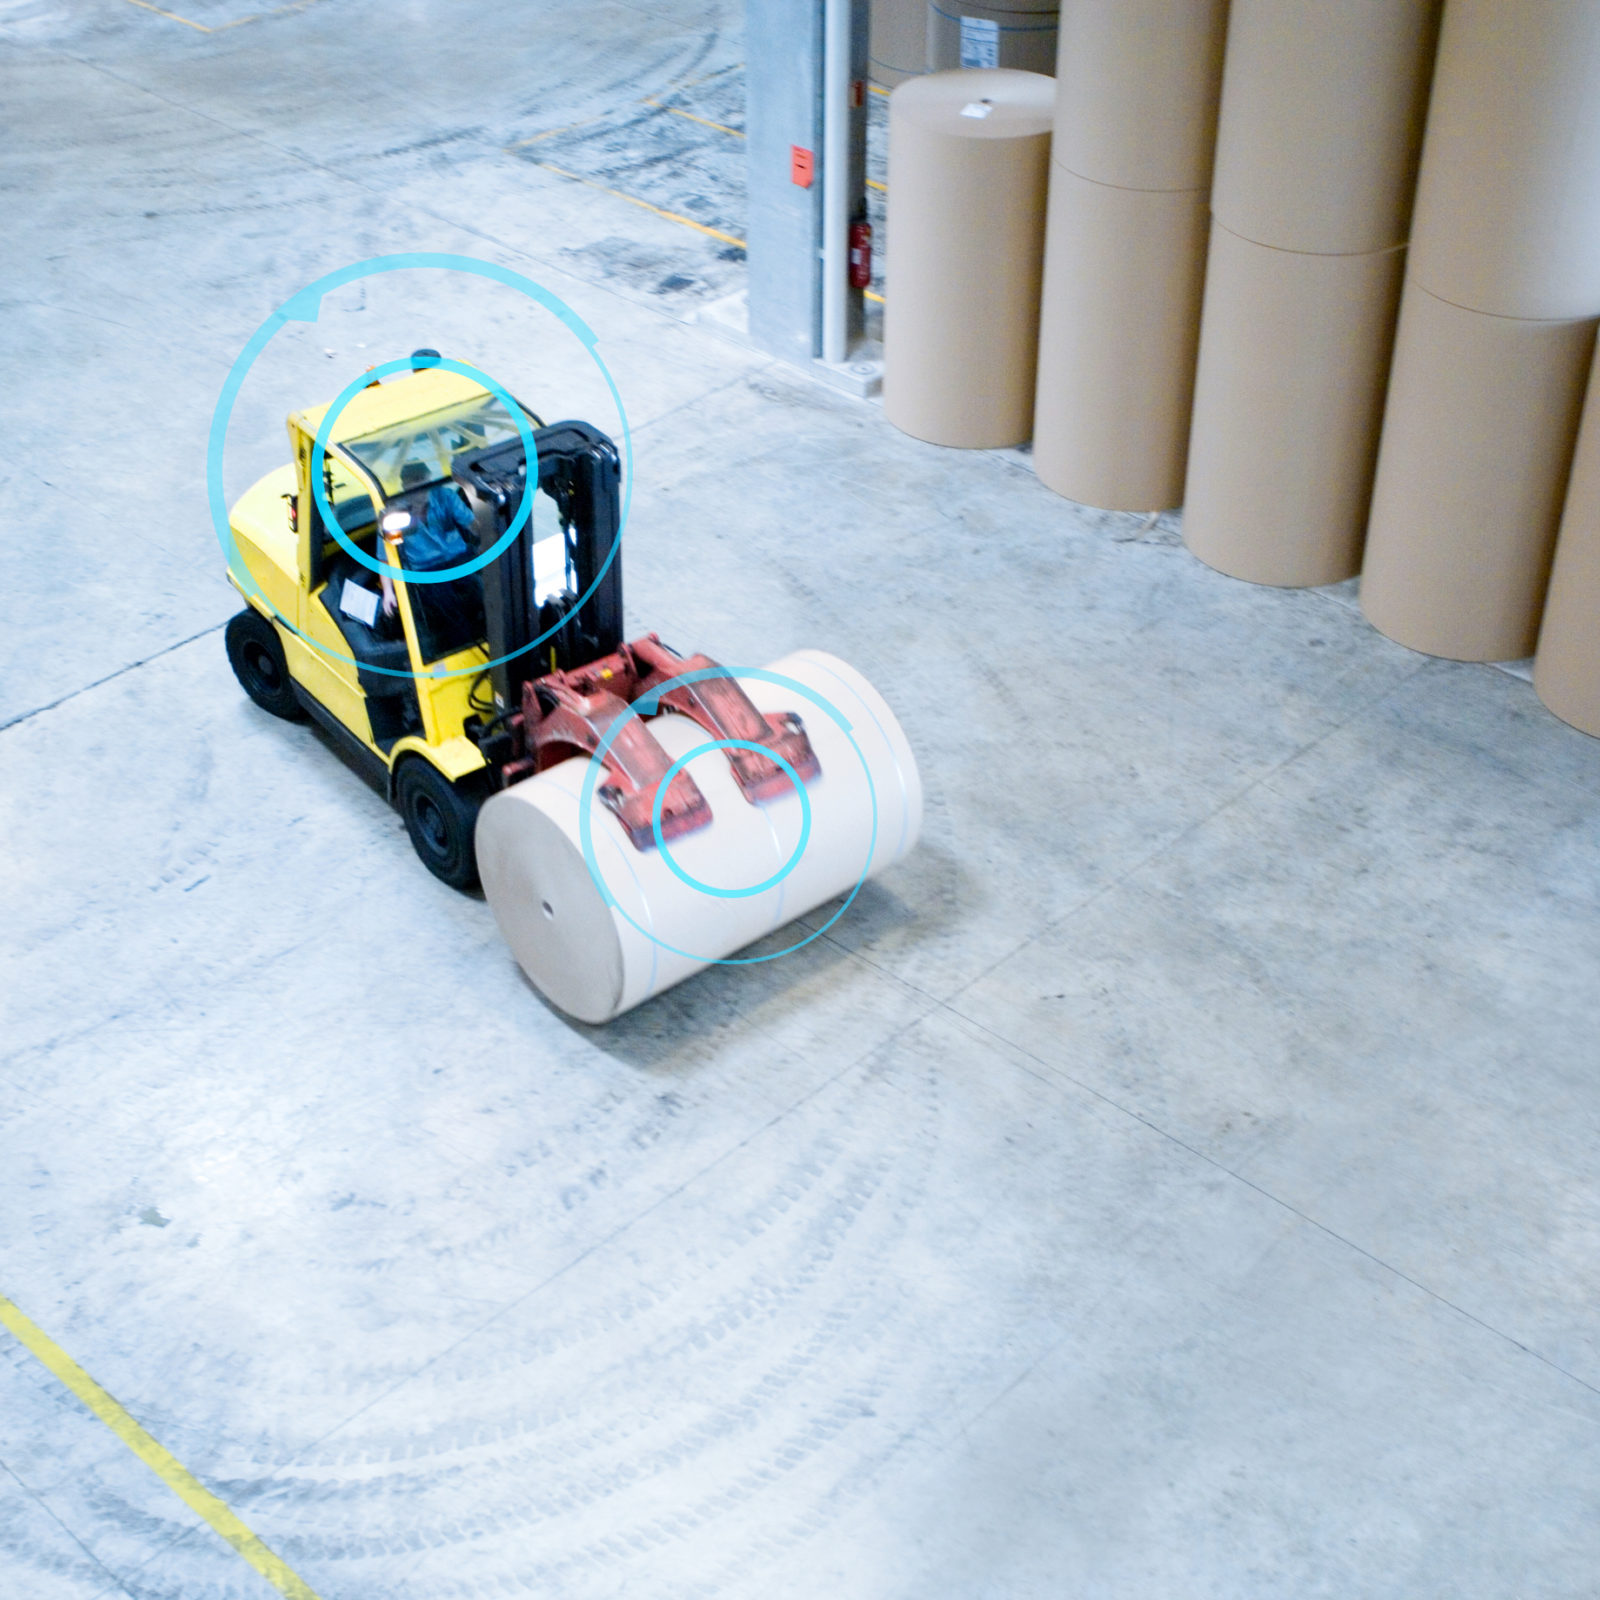 Forklift picking up roll of paper